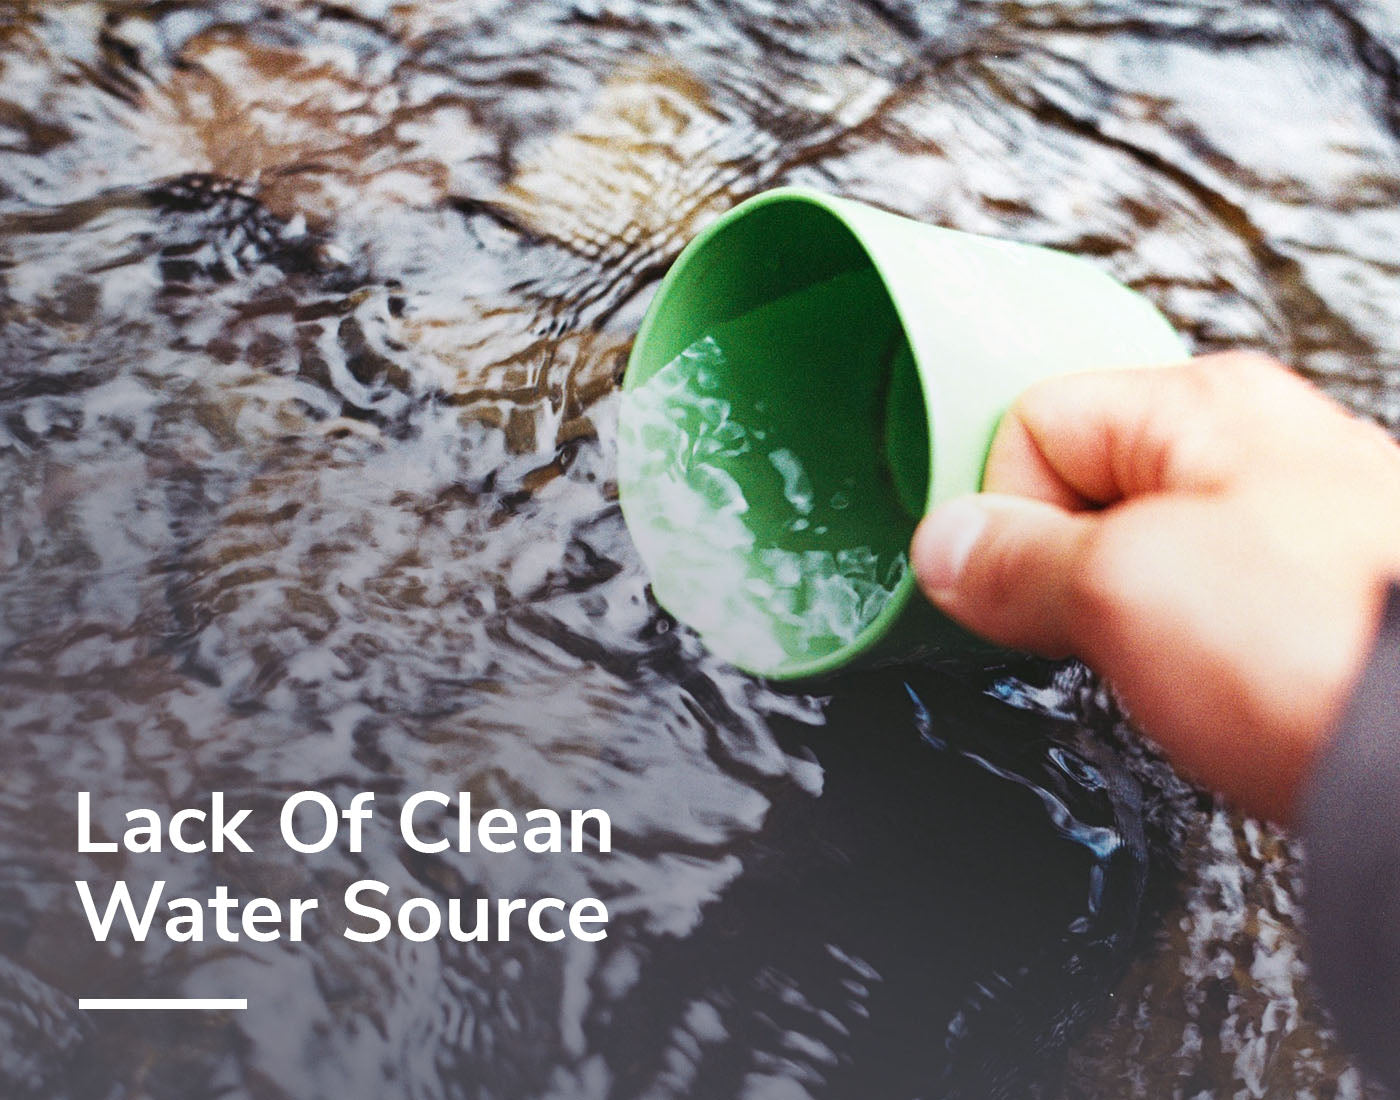 Lack Of Clean Water Source